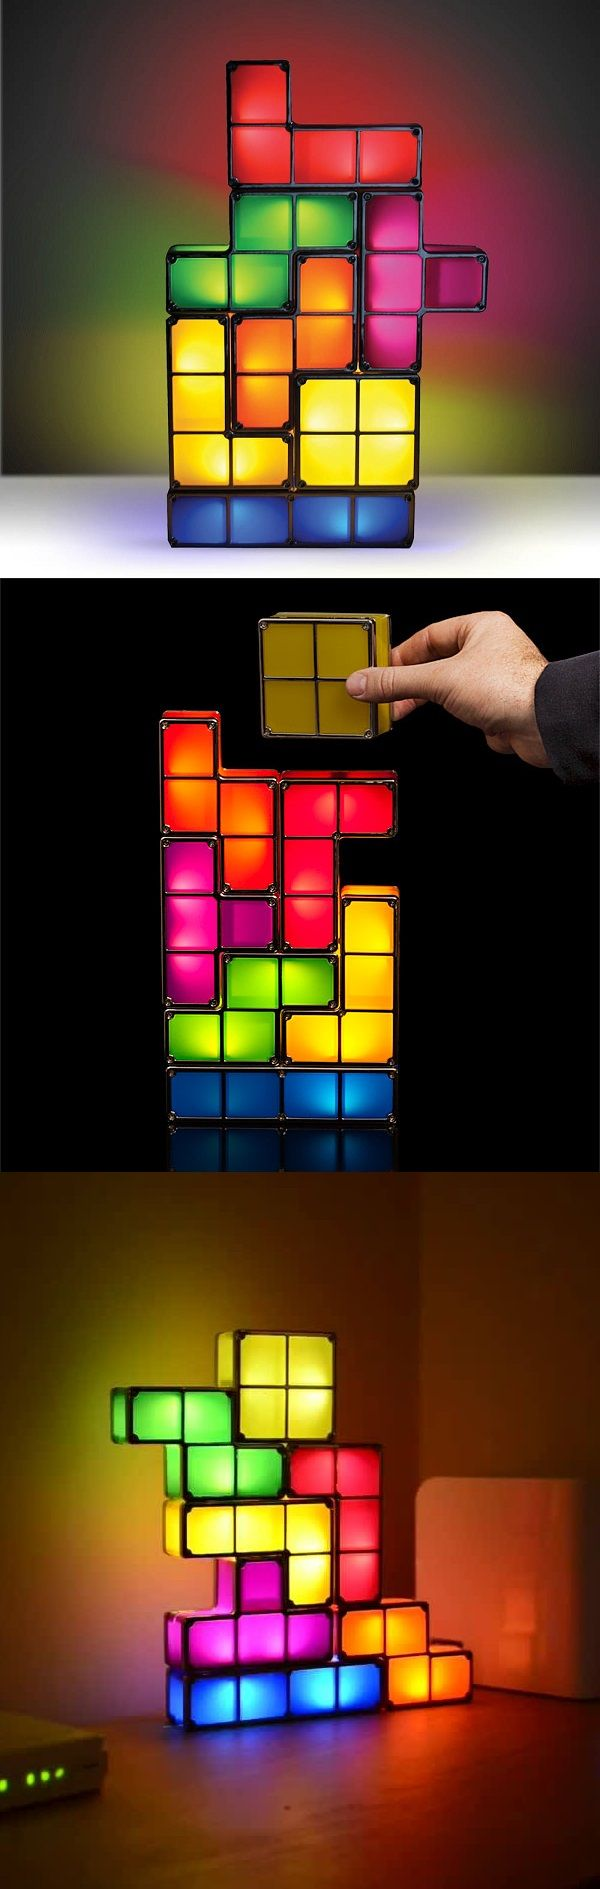 This Tetris-lamp is very interesting, I have no idea how it works but as it would seem there is no way I could develop on this, although it could be the basis for a different concept.